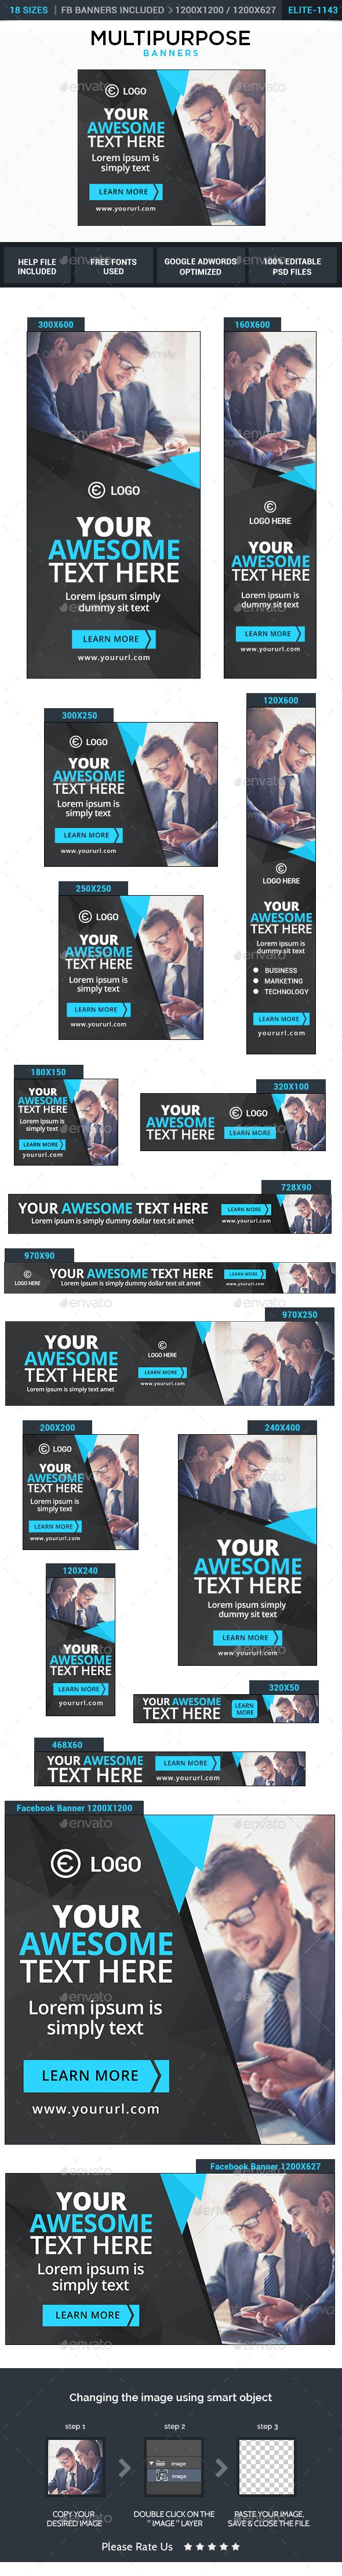 Multipurpose Web Banners Template PSD. Download here: http://graphicriver.net/item/multipurpose-banners/14816573?ref=ksioks